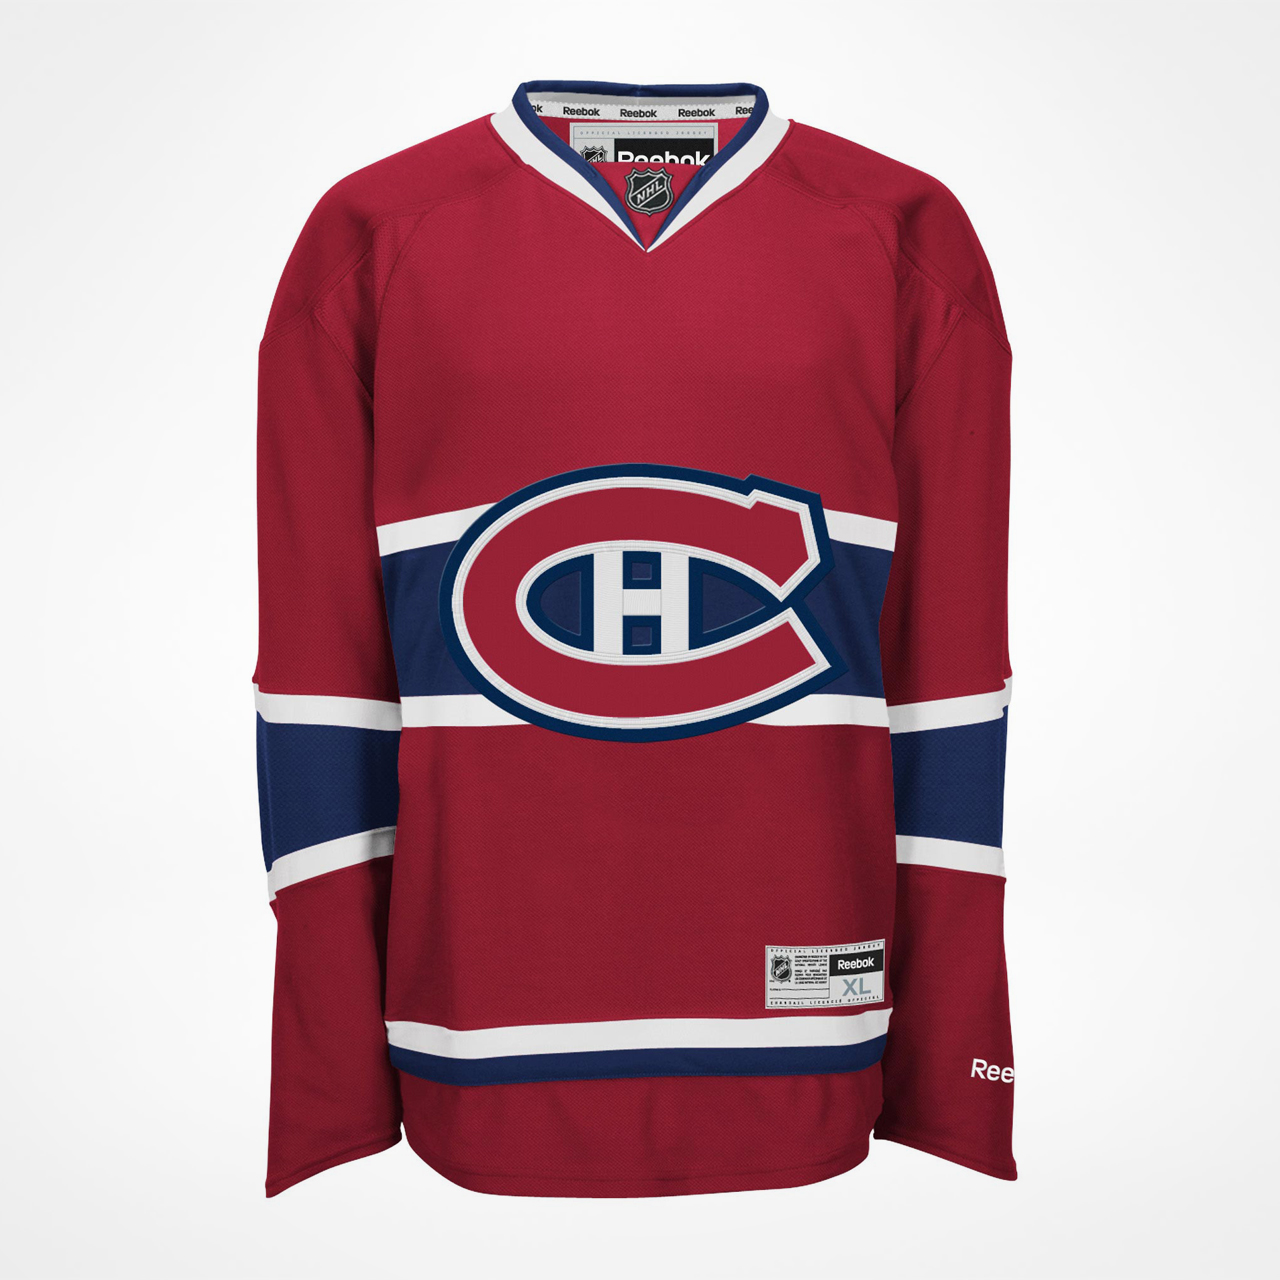 separation shoes 725e5 7fb1c Montreal Canadiens Premier Replica Home Jersey ...